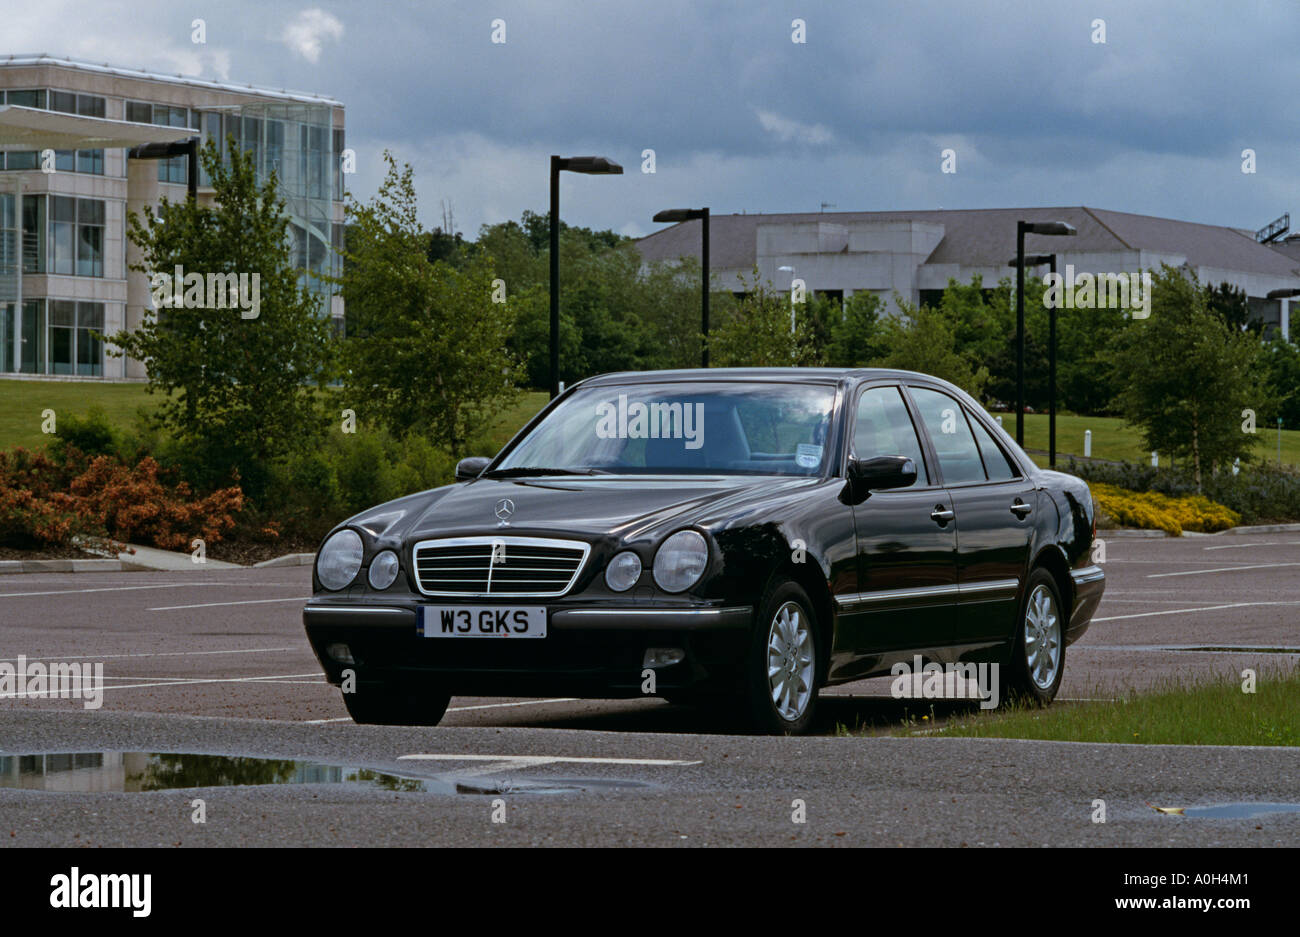 mercedes benz e class 1995 to 2002 e320 cdi w210 stock photo royalty free image 5711936 alamy. Black Bedroom Furniture Sets. Home Design Ideas